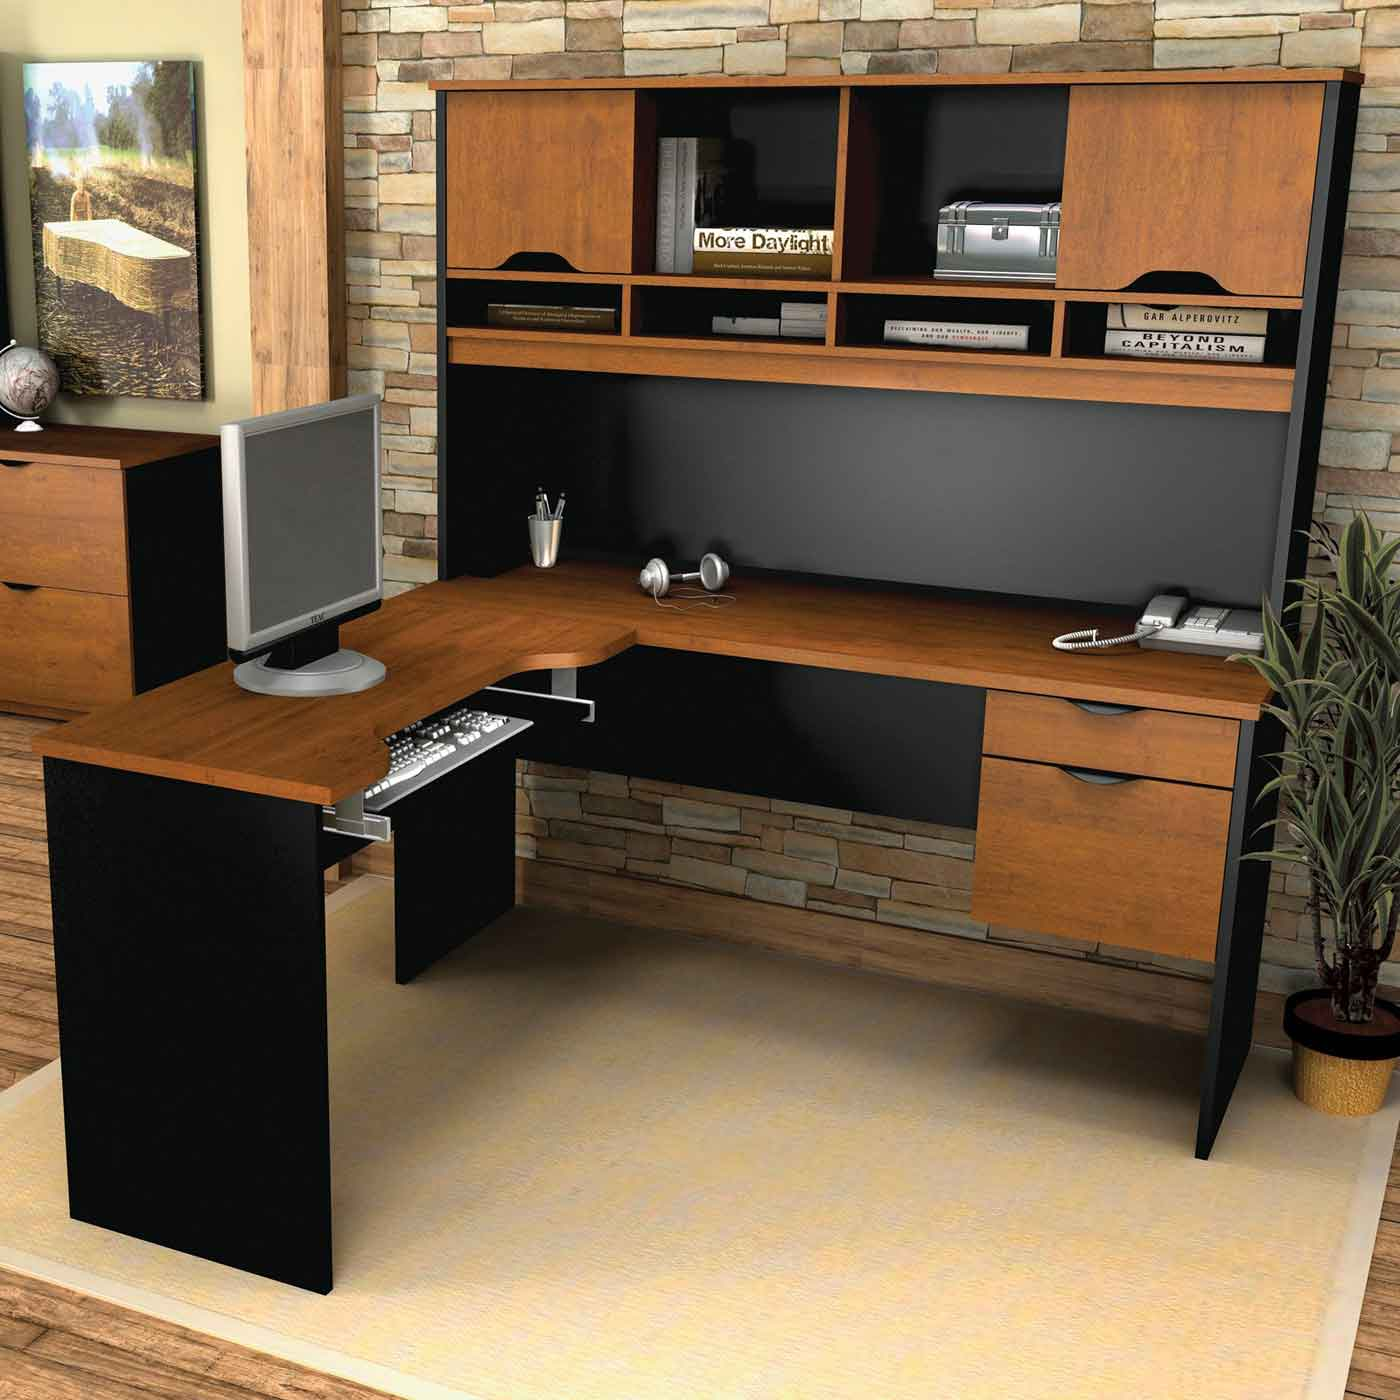 Large Surface L Shaped Desk with Hutch in black and brown color plus computer on wooden floor plus cream carpet for home office decor ideas